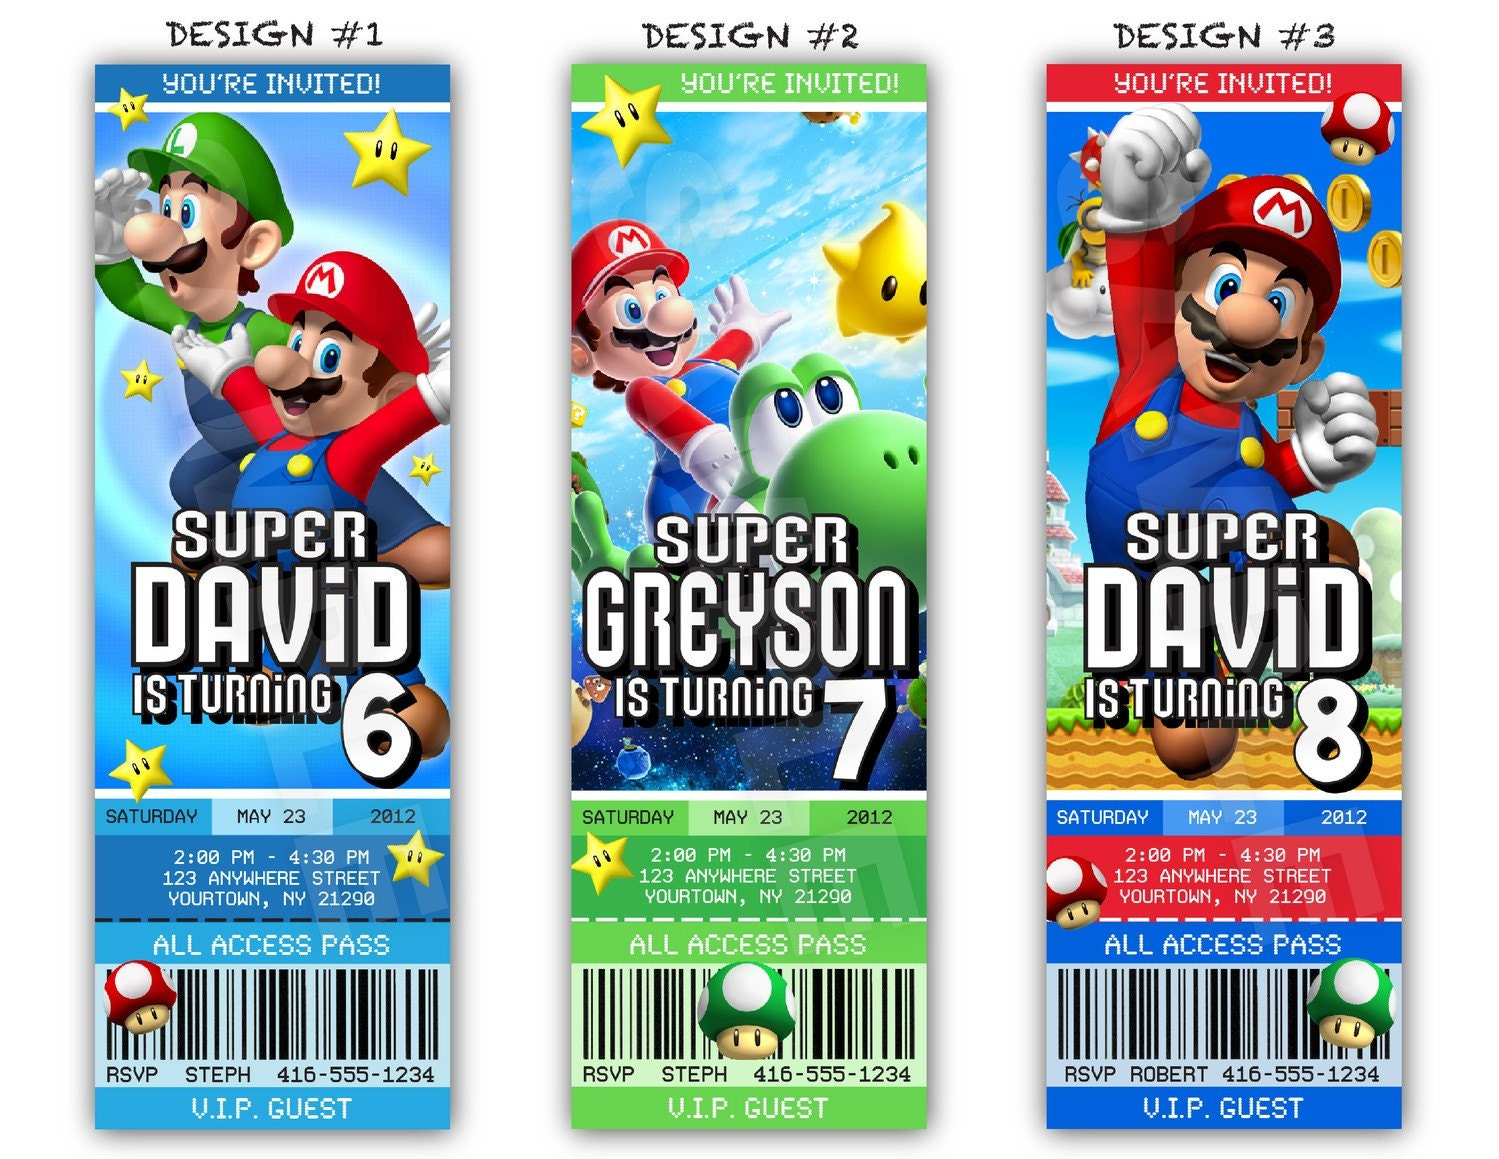 Mario Birthday Invitations is one of our best ideas you might choose for invitation design